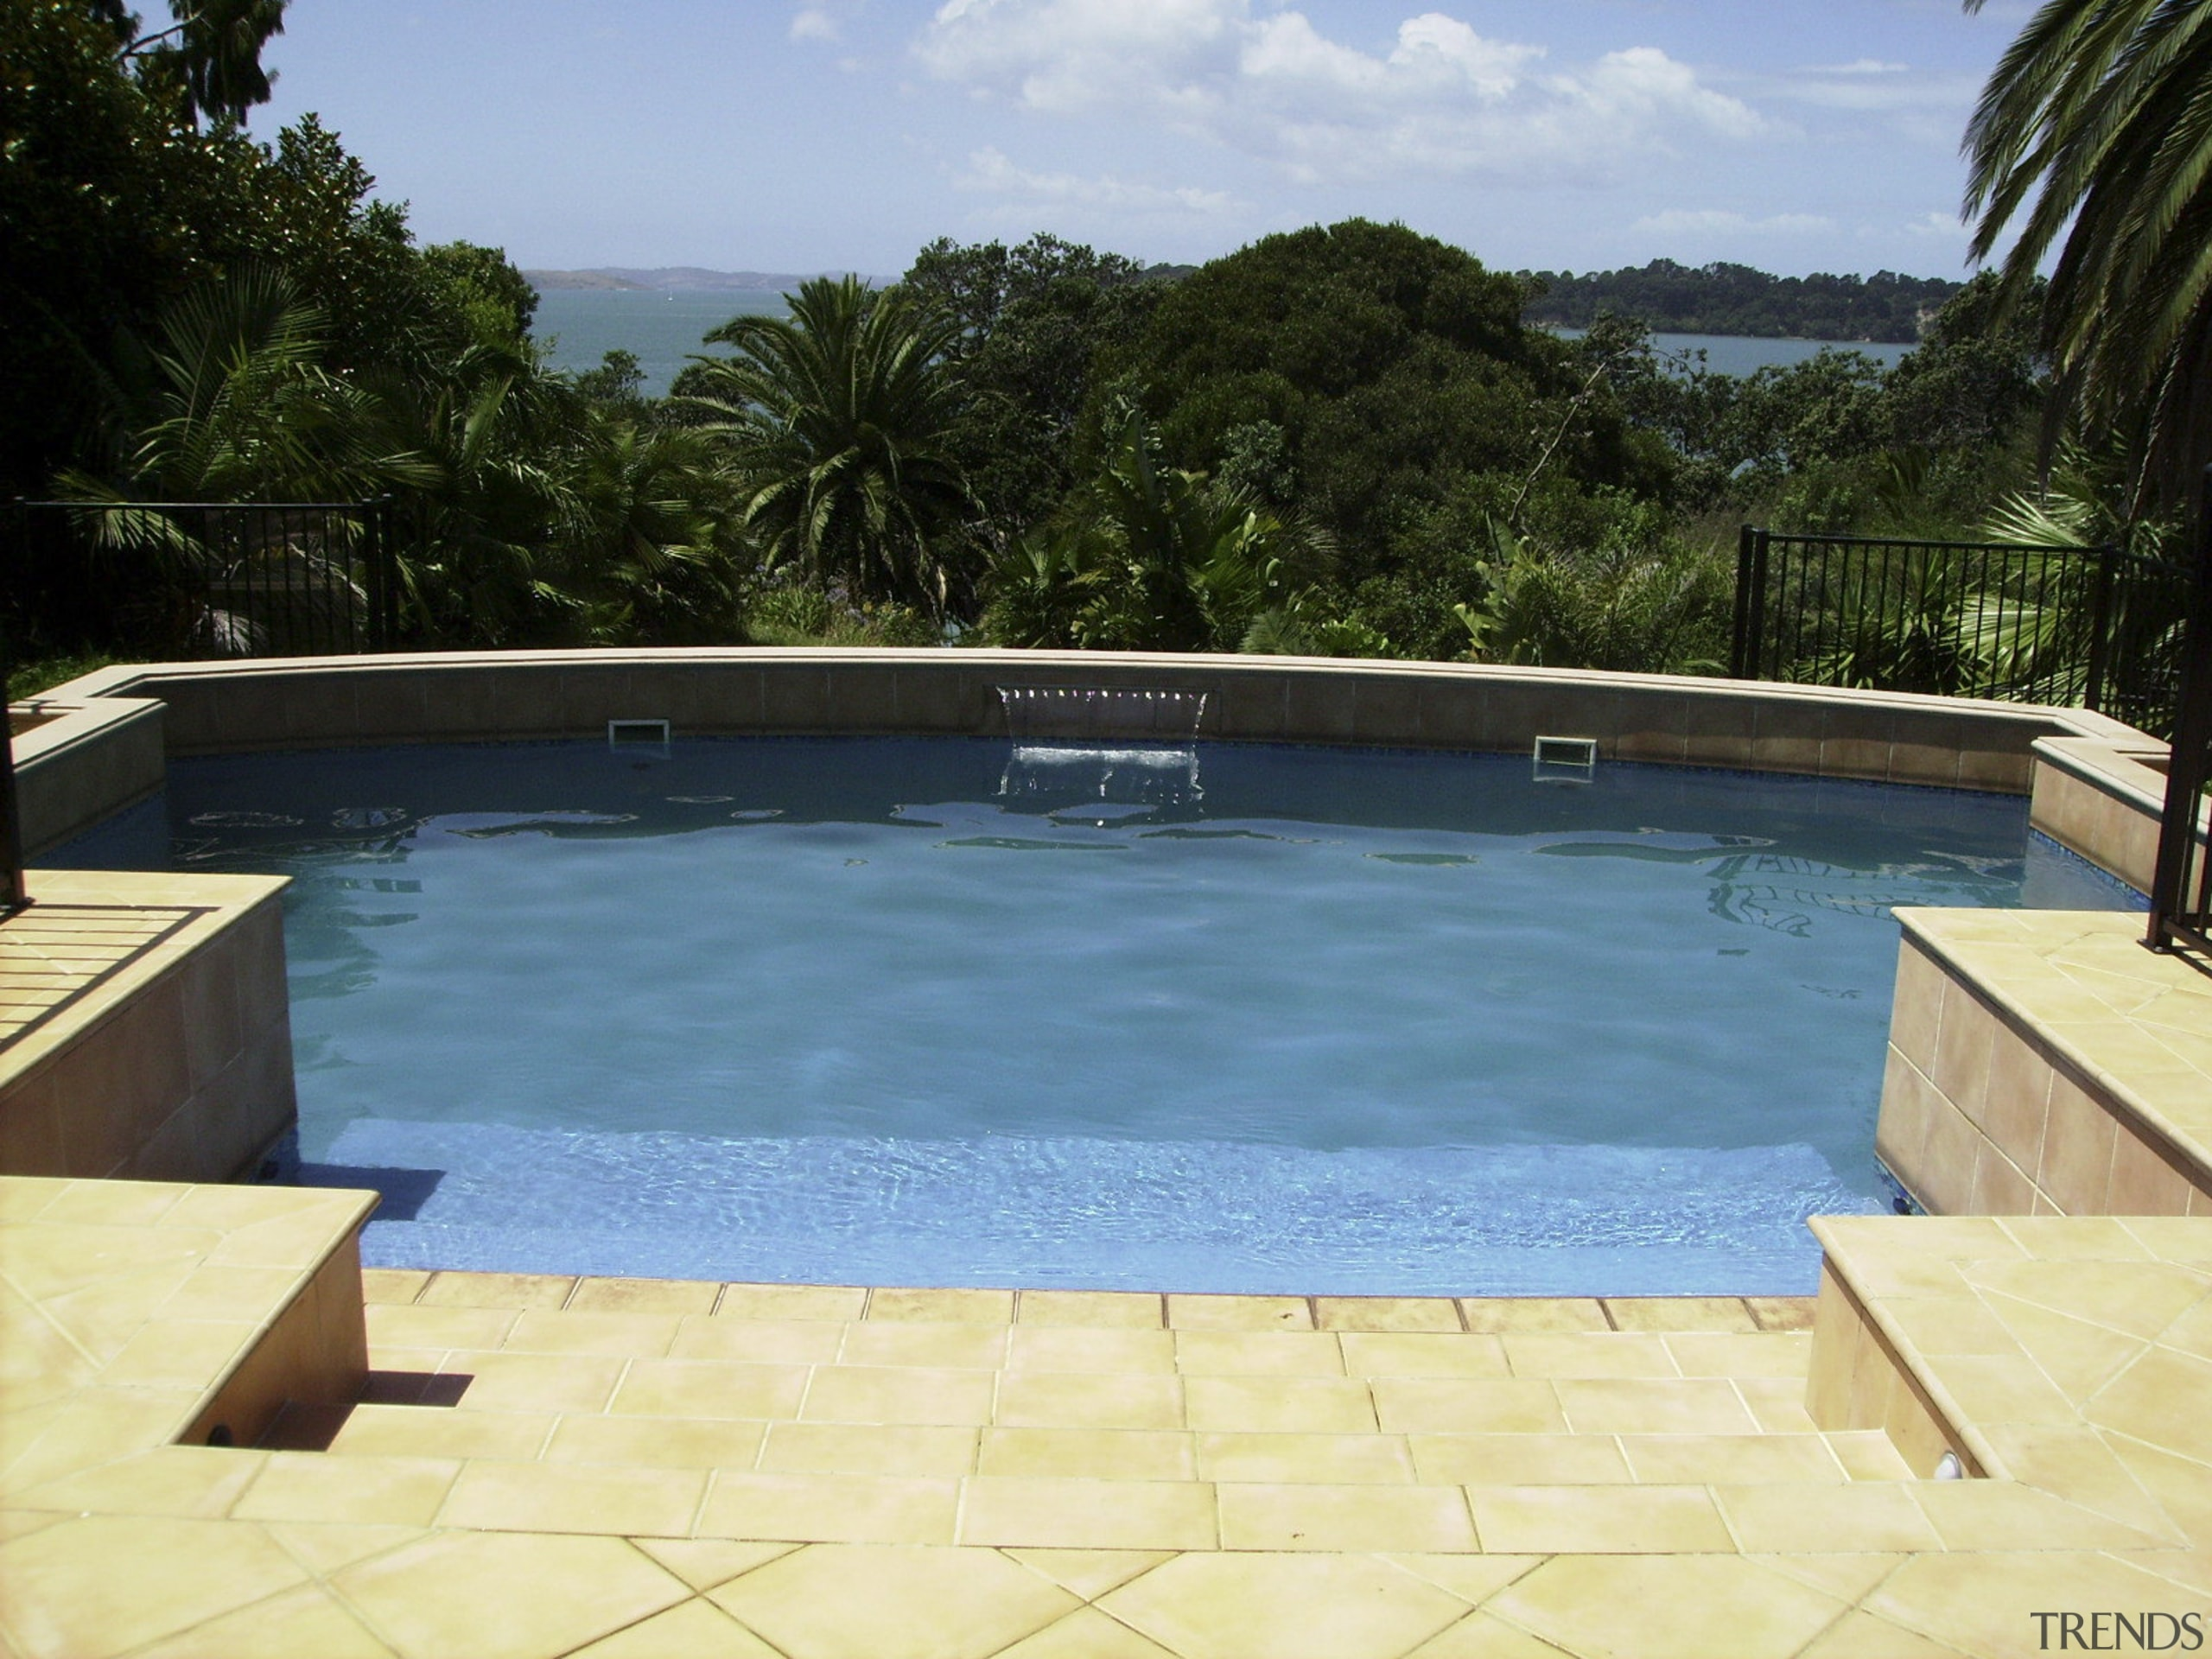 Exterior view of modern pool - Exterior view area, estate, leisure, property, real estate, resort, swimming pool, water, teal, yellow